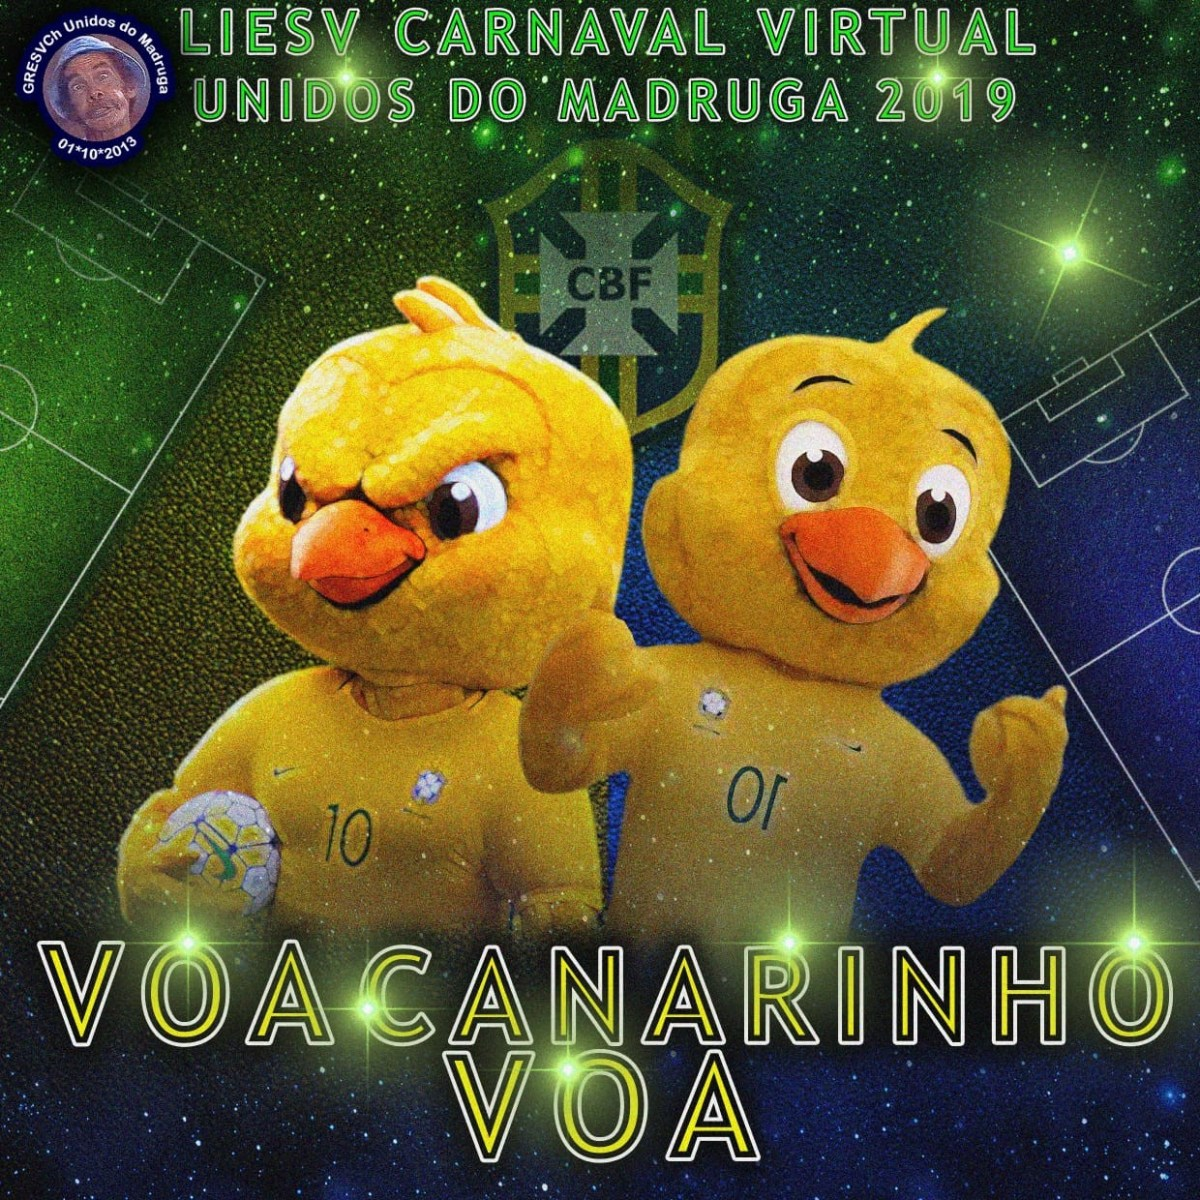 Unidos do Madruga lança sua sinopse pro Carnaval Virtual 2019